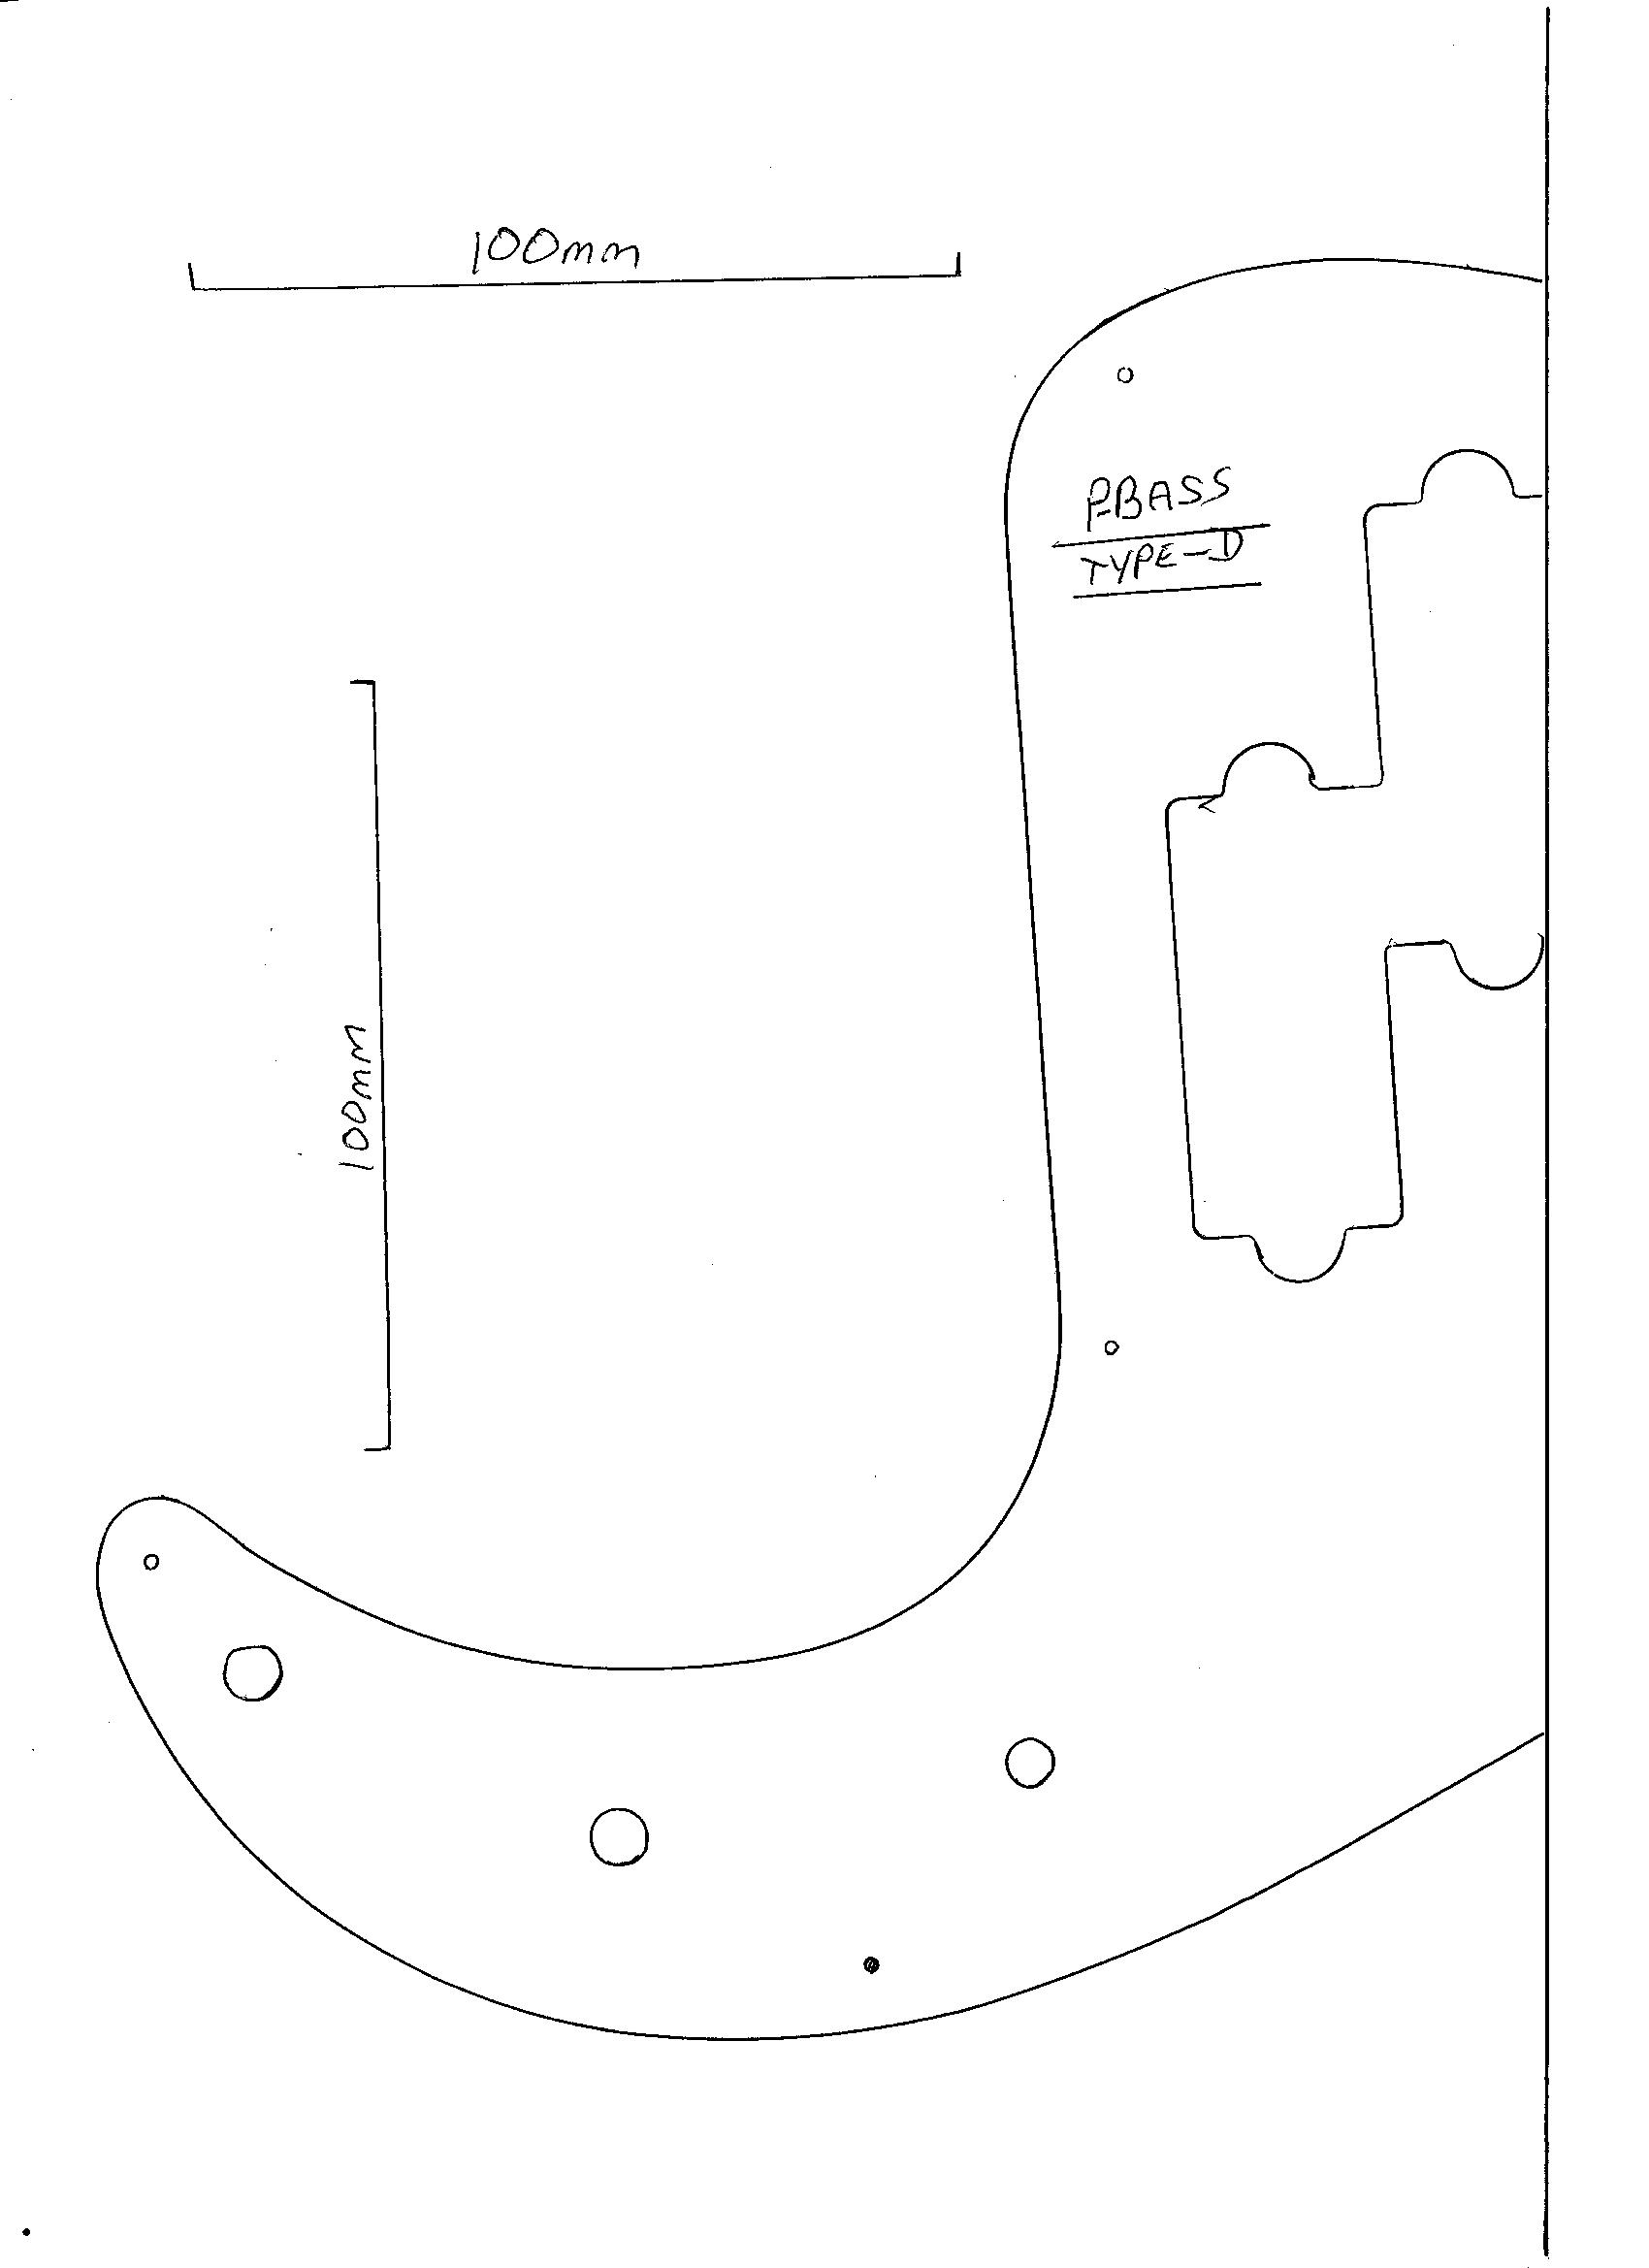 jazz bass pickguard template - p bass guitar dimensions template pictures to pin on